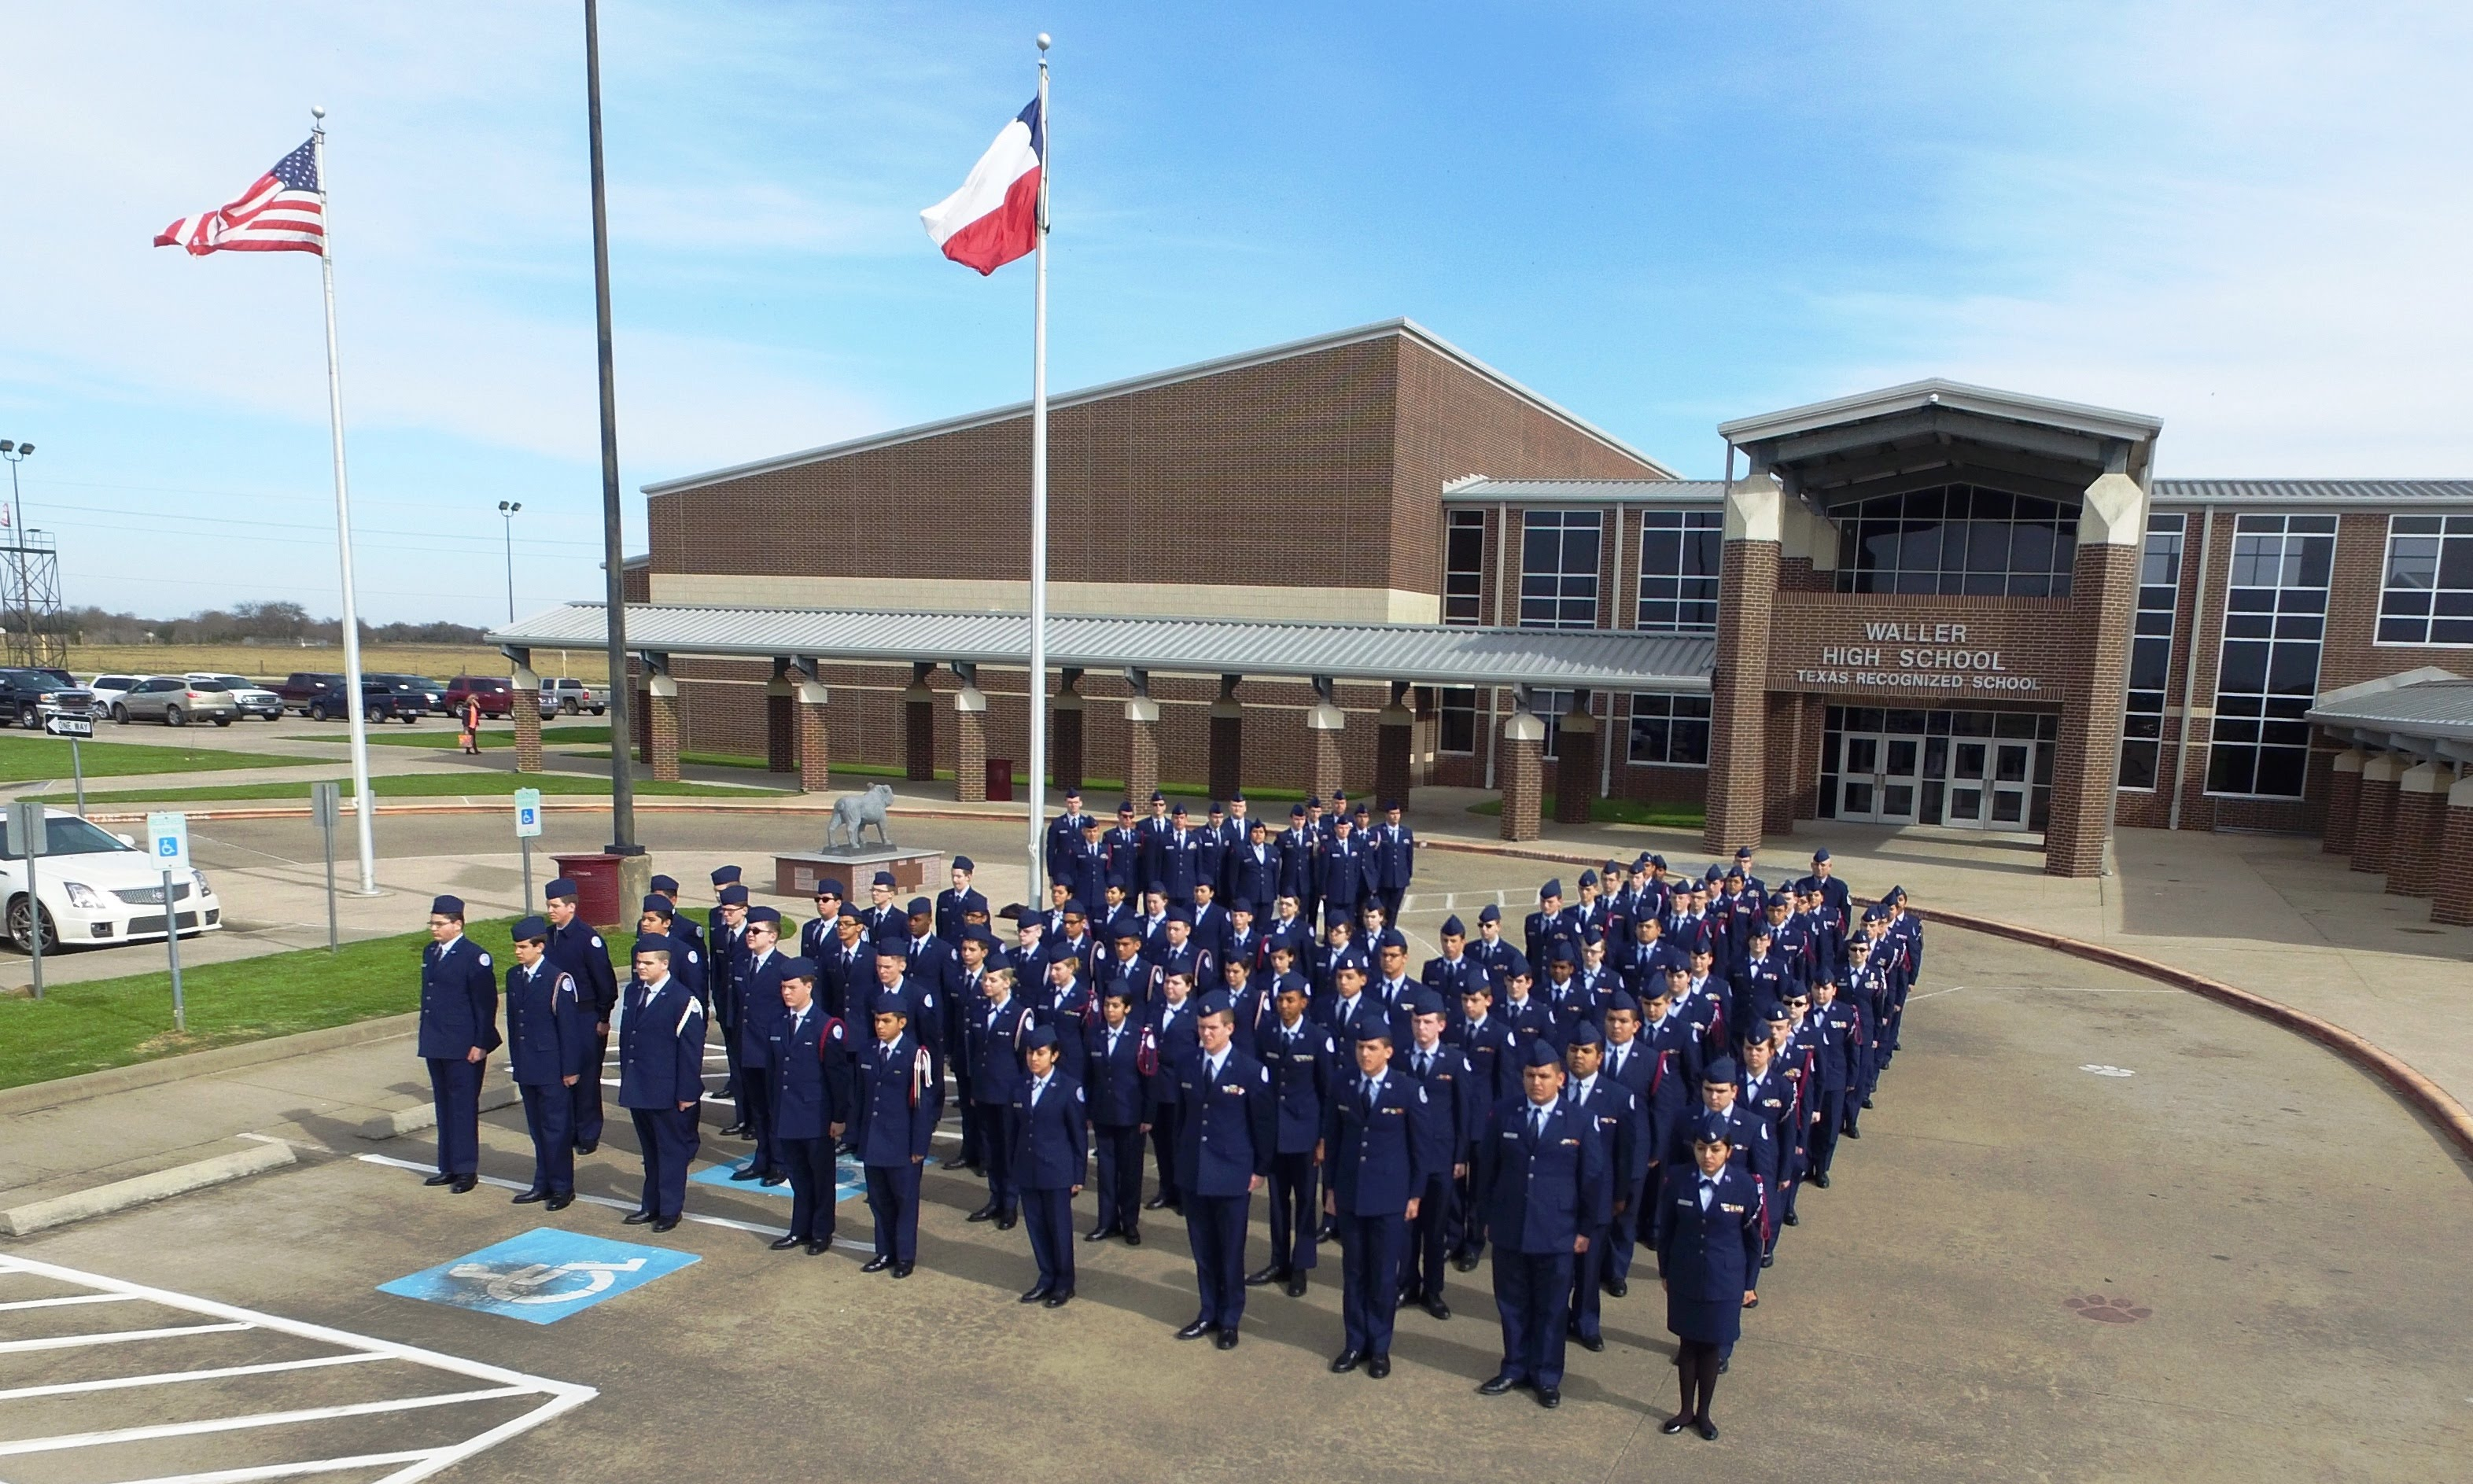 The Texas 20065th Cadet Corps